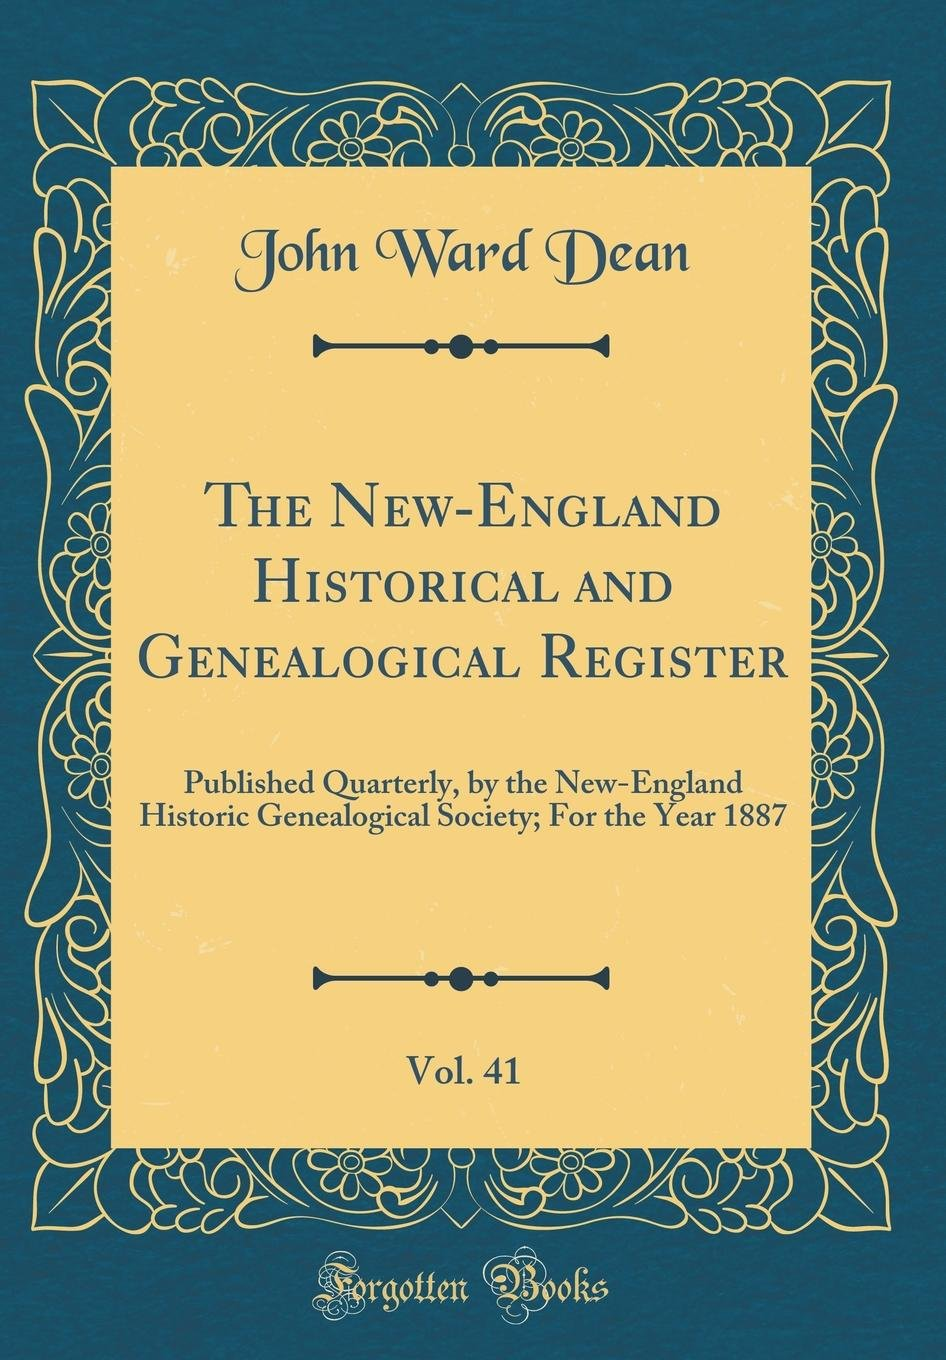 Read Online The New-England Historical and Genealogical Register, Vol. 41: Published Quarterly, by the New-England Historic Genealogical Society; For the Year 1887 (Classic Reprint) pdf epub